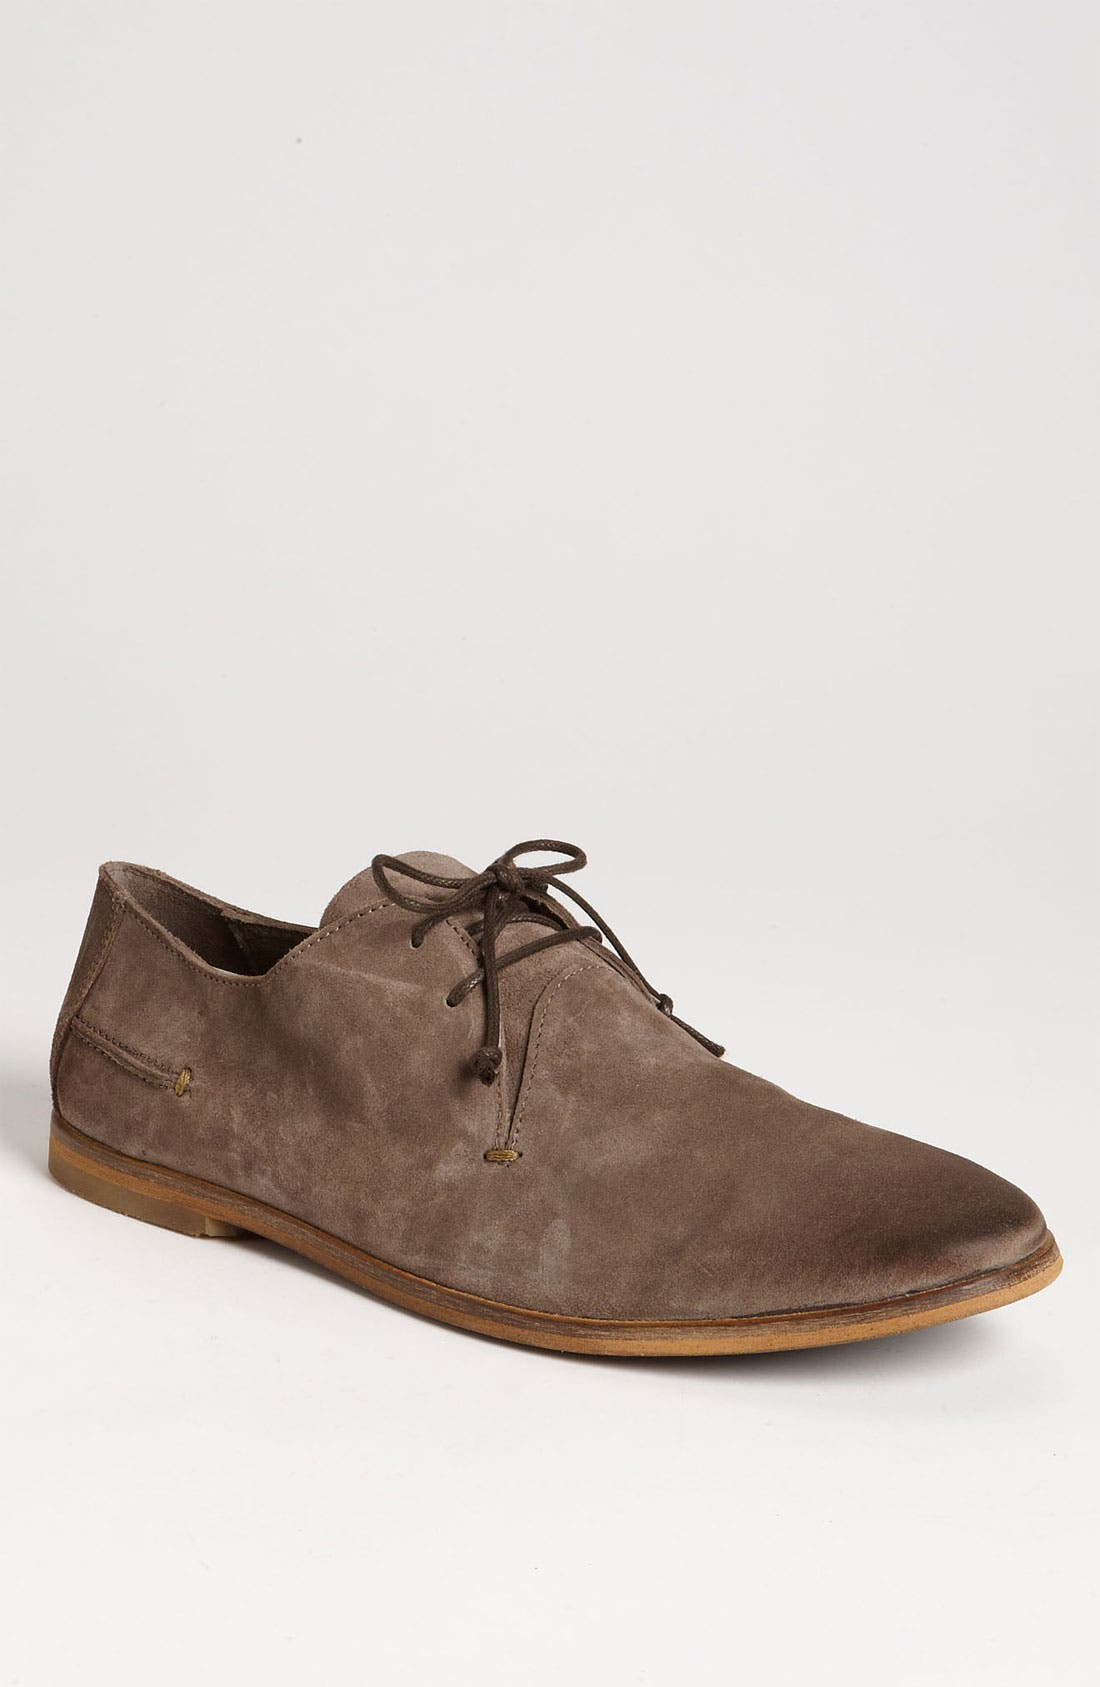 Alternate Image 1 Selected - Kickers 'Riviero' Oxford (Online Only)